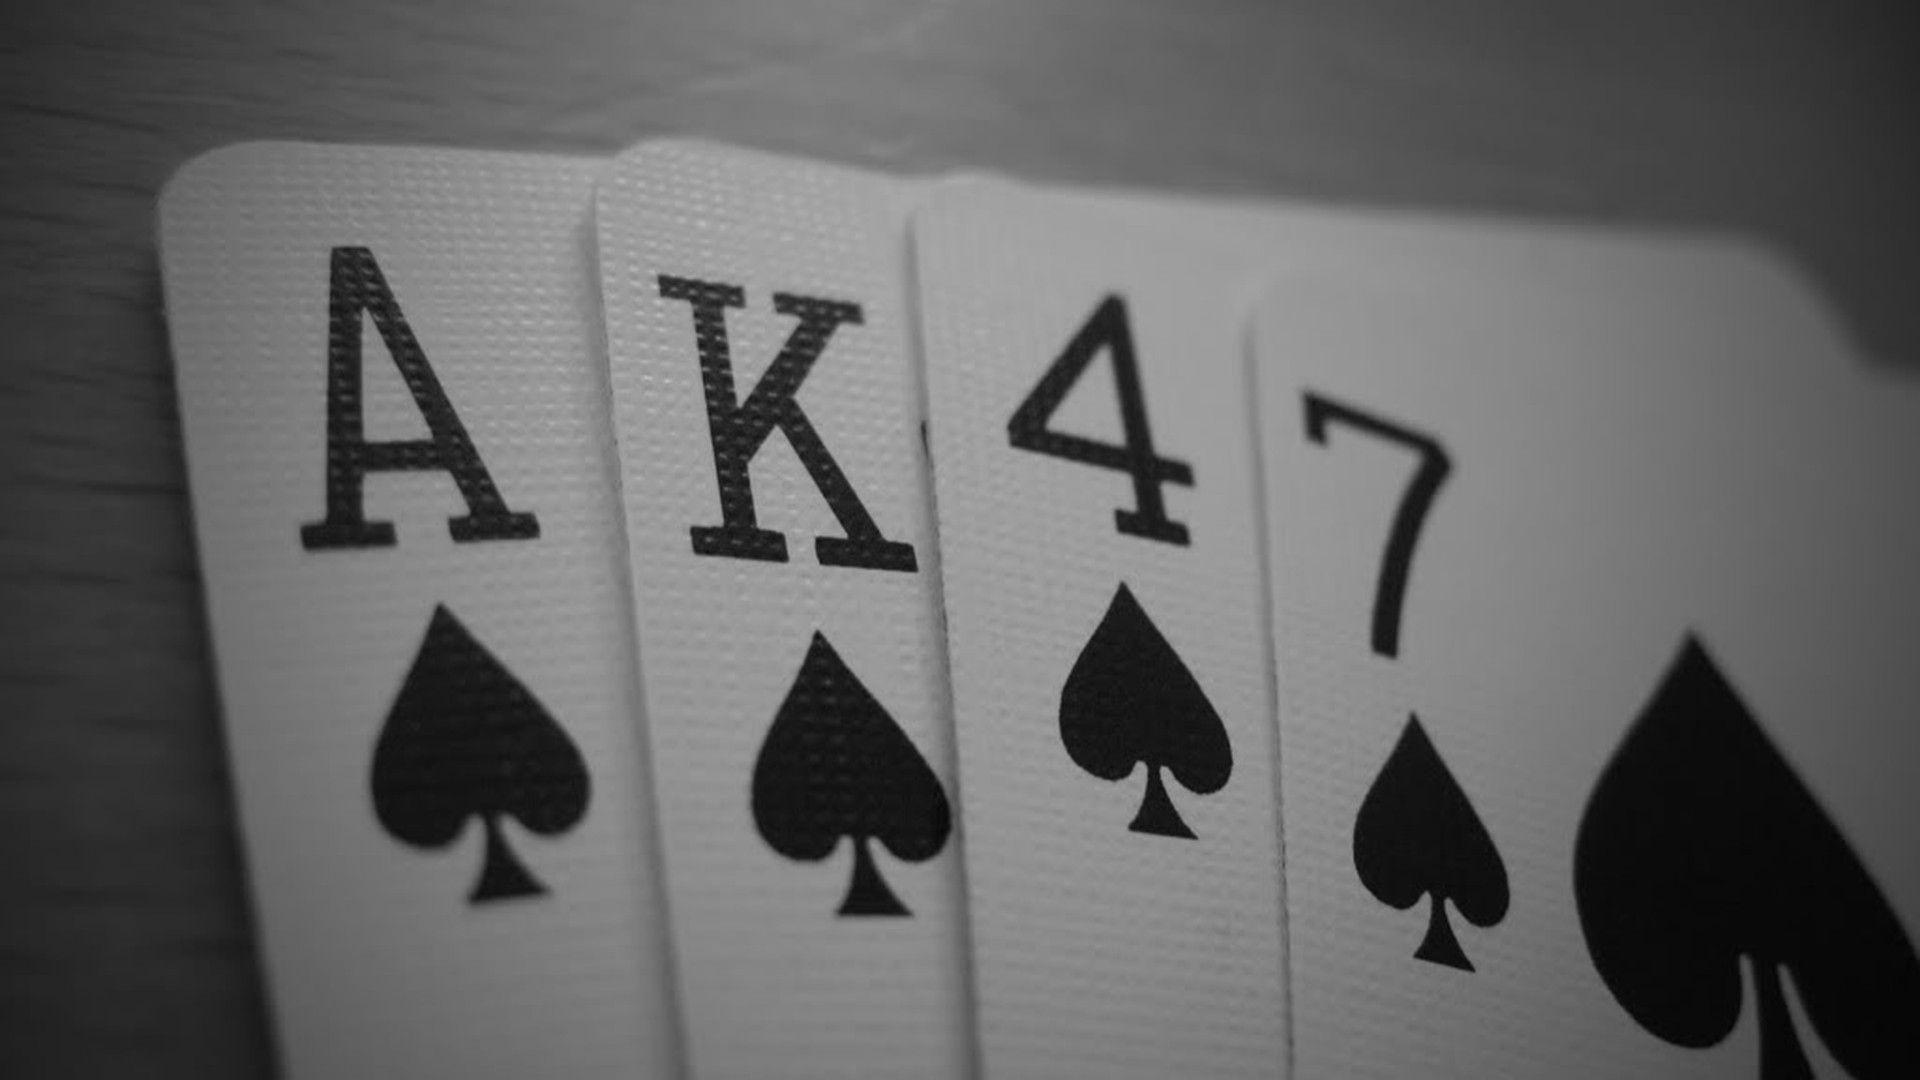 Ak 47 Playing Cards Wallpapers HD Desktop And Mobile Backgrounds